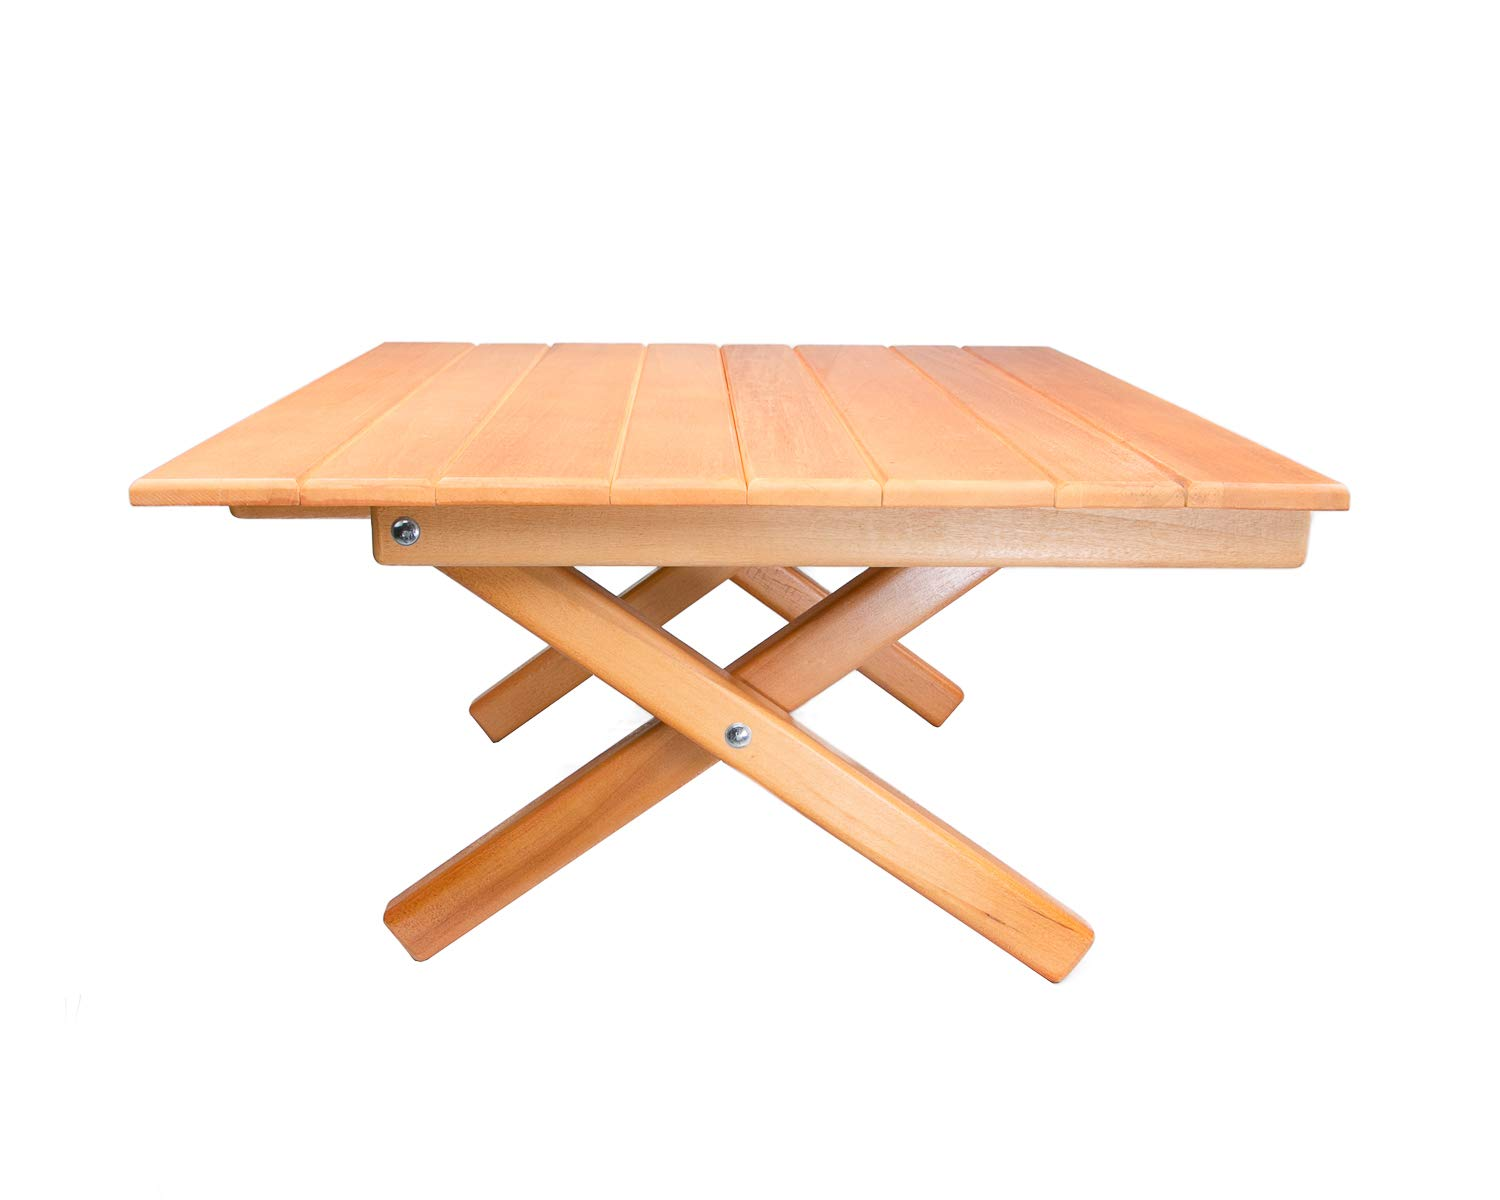 Simple Setup Short Table All-Purpose Indoor or Outdoor Use Table - Beach, Picnic, Camp, Or Patio Table - All Wood Height 10''